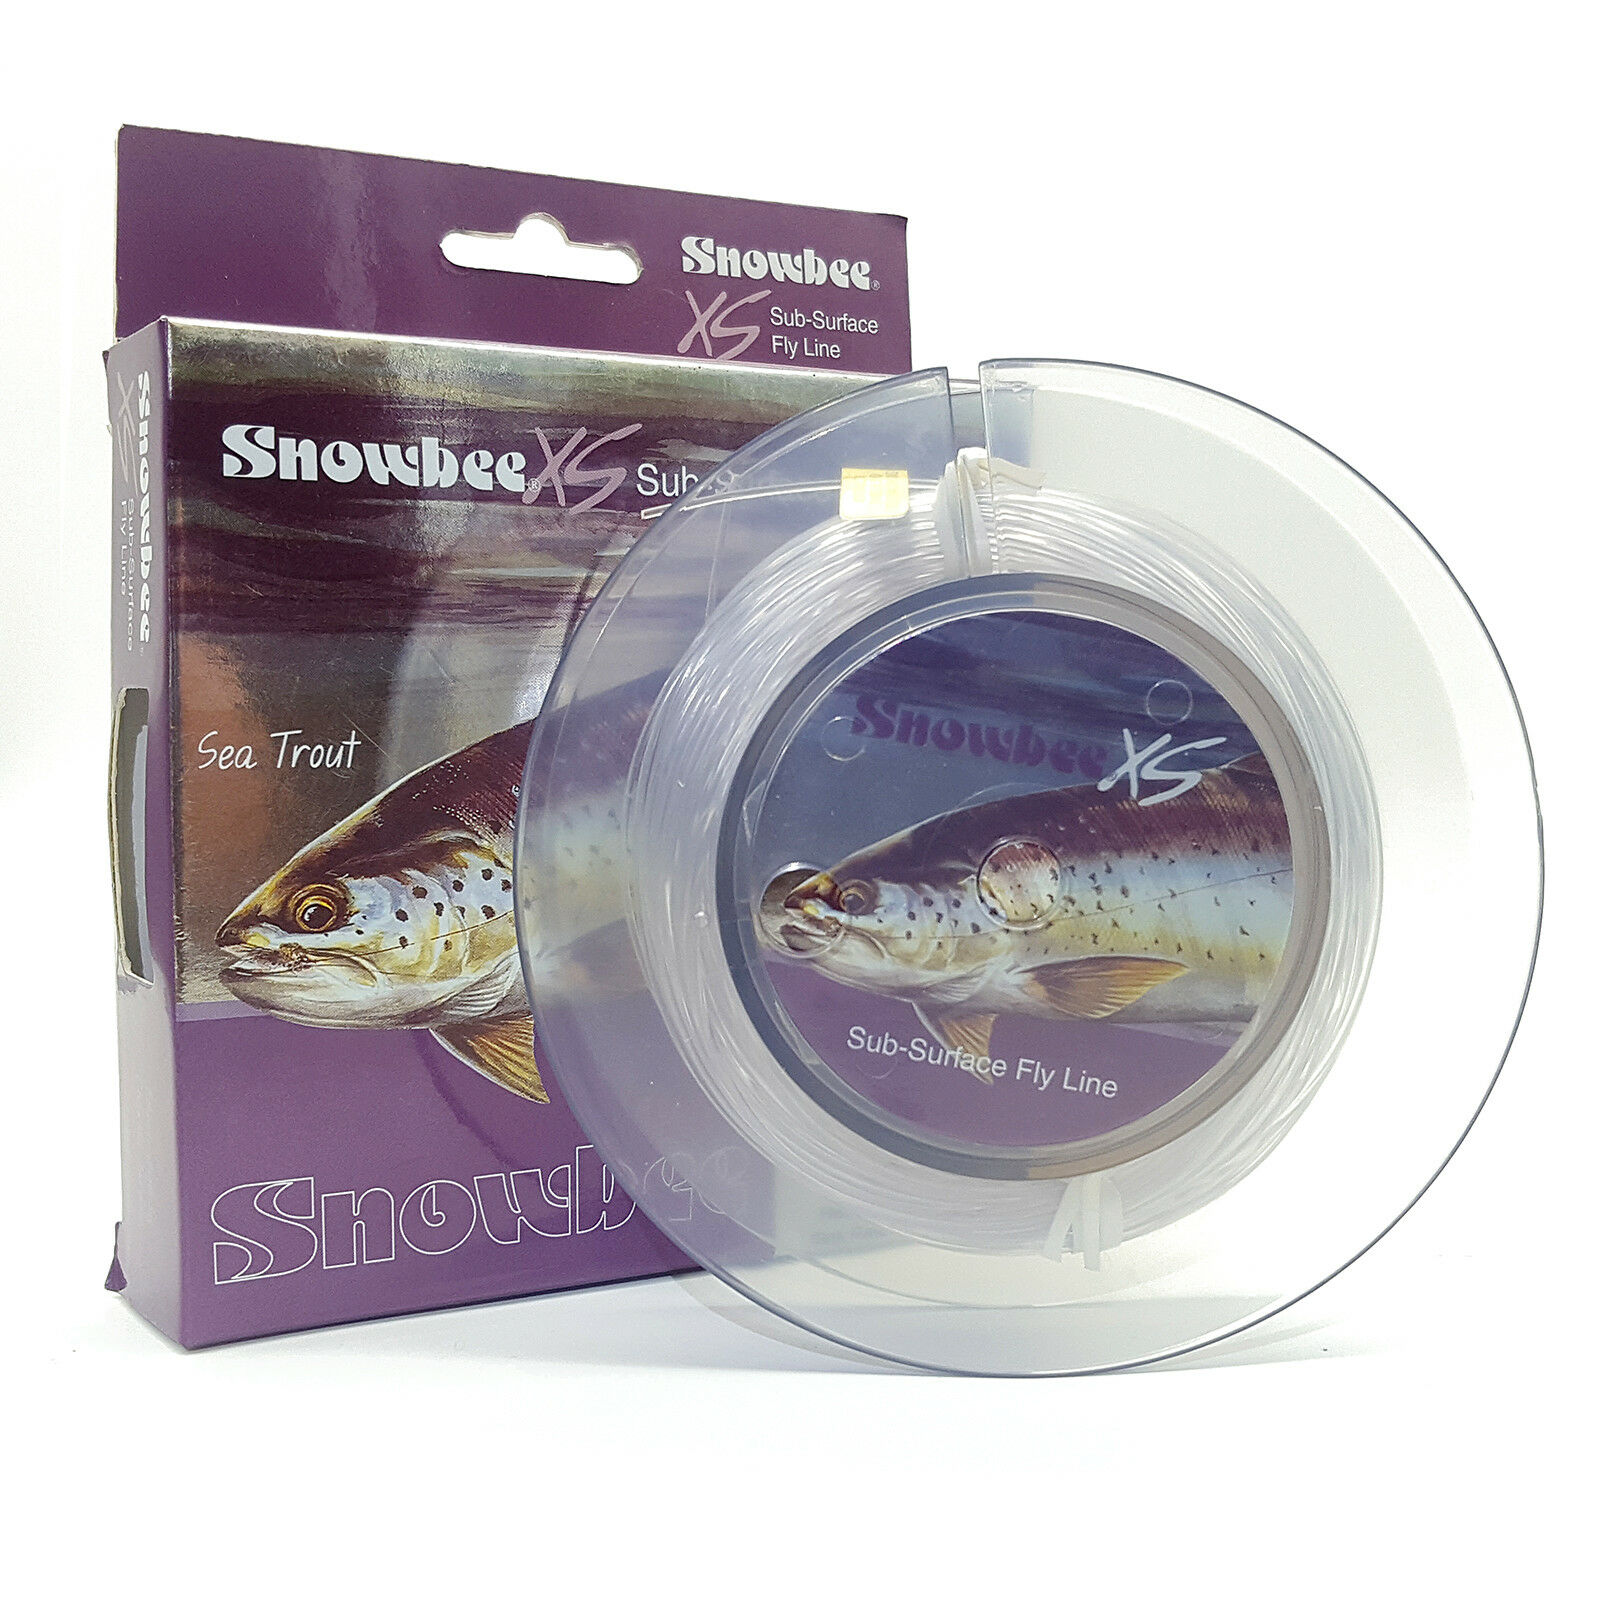 Snowbee XS Sub-Surface Fly Line  - Intermediate - Trout Sea Trout Fishing WF6 WF7  online discount